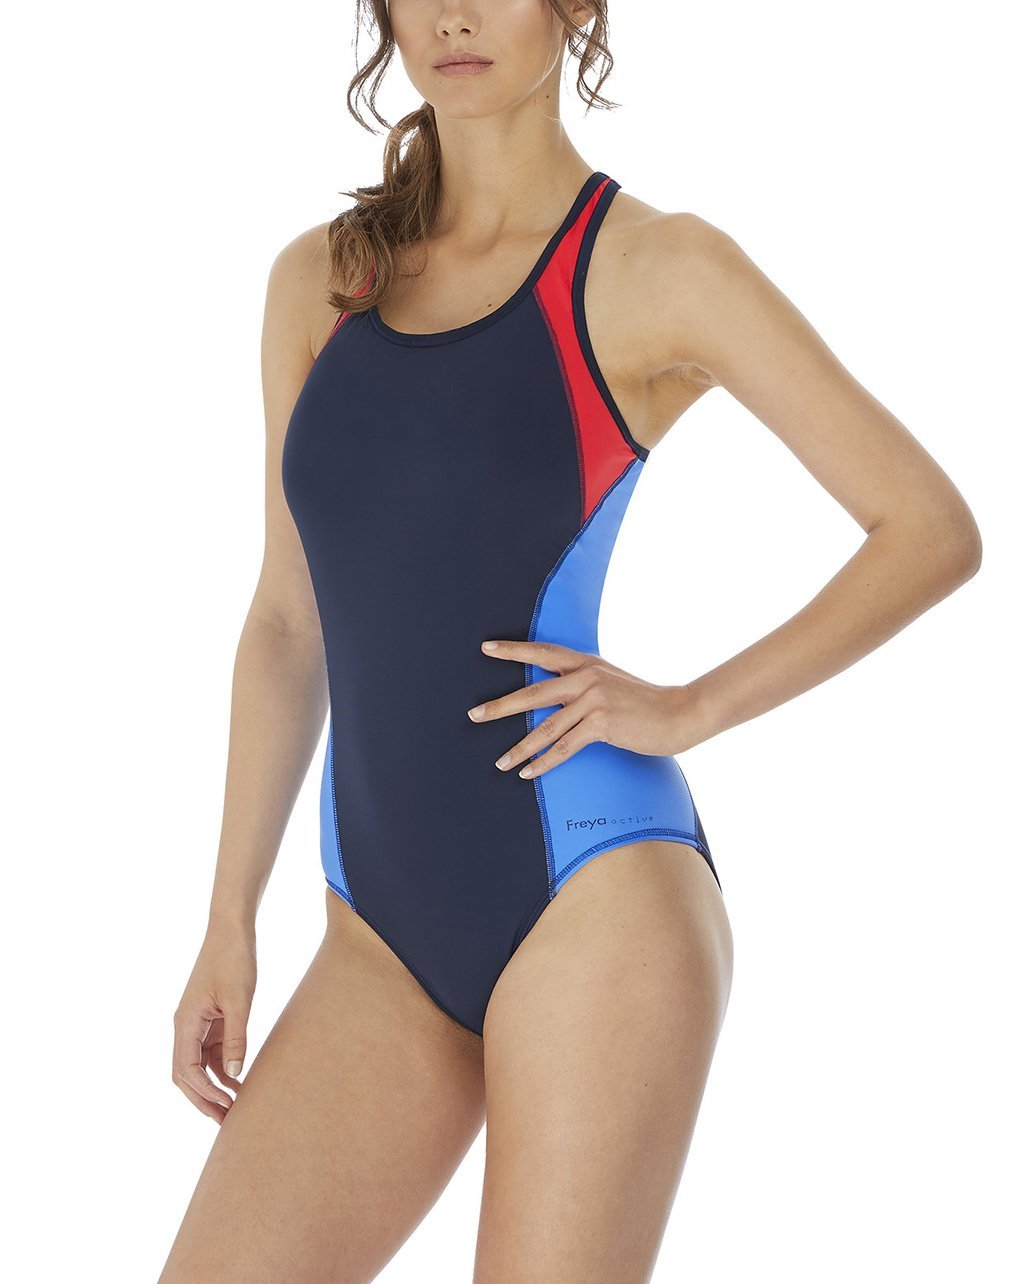 Freya Swim Freestyle Underwire One Piece